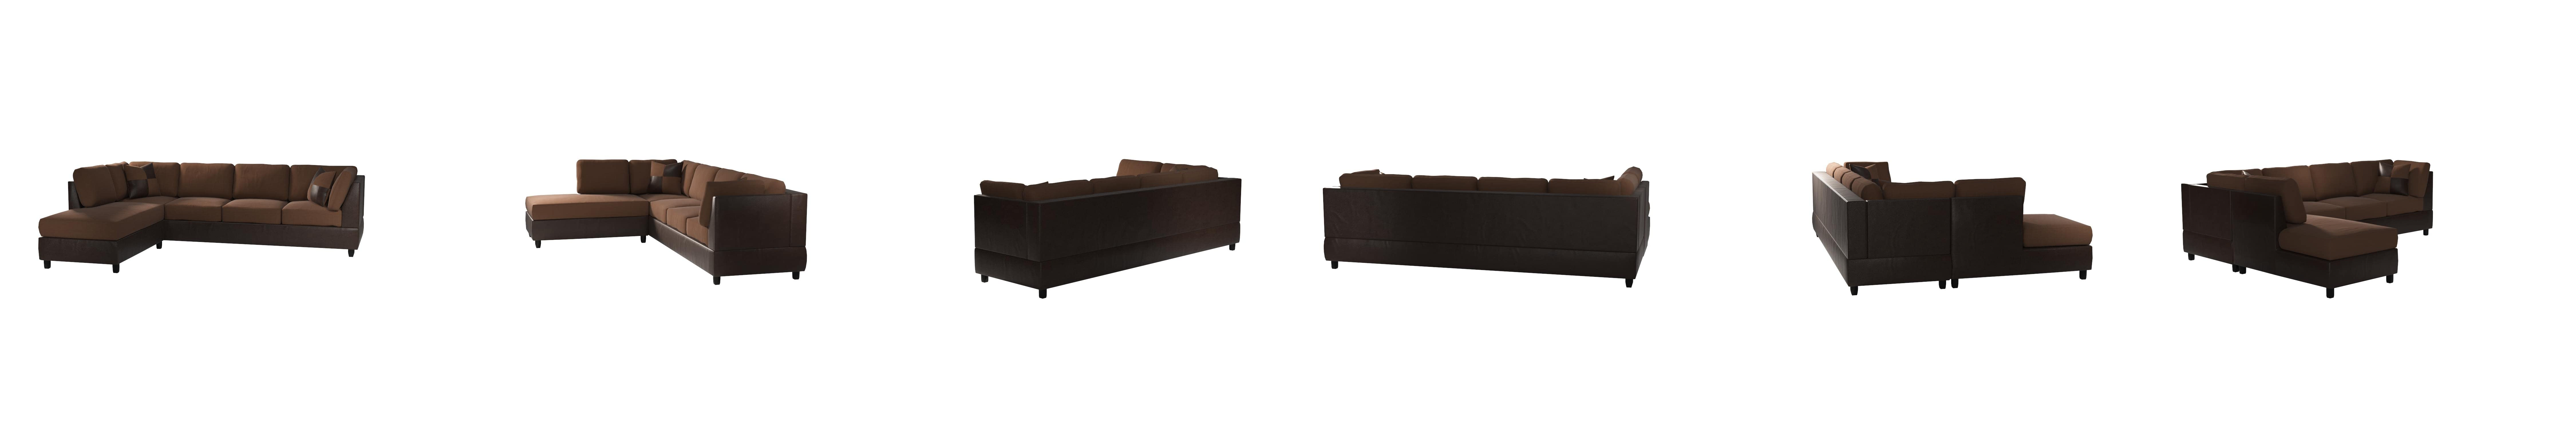 Amazon Homelegance 9909CH fort Living Sectional Collection